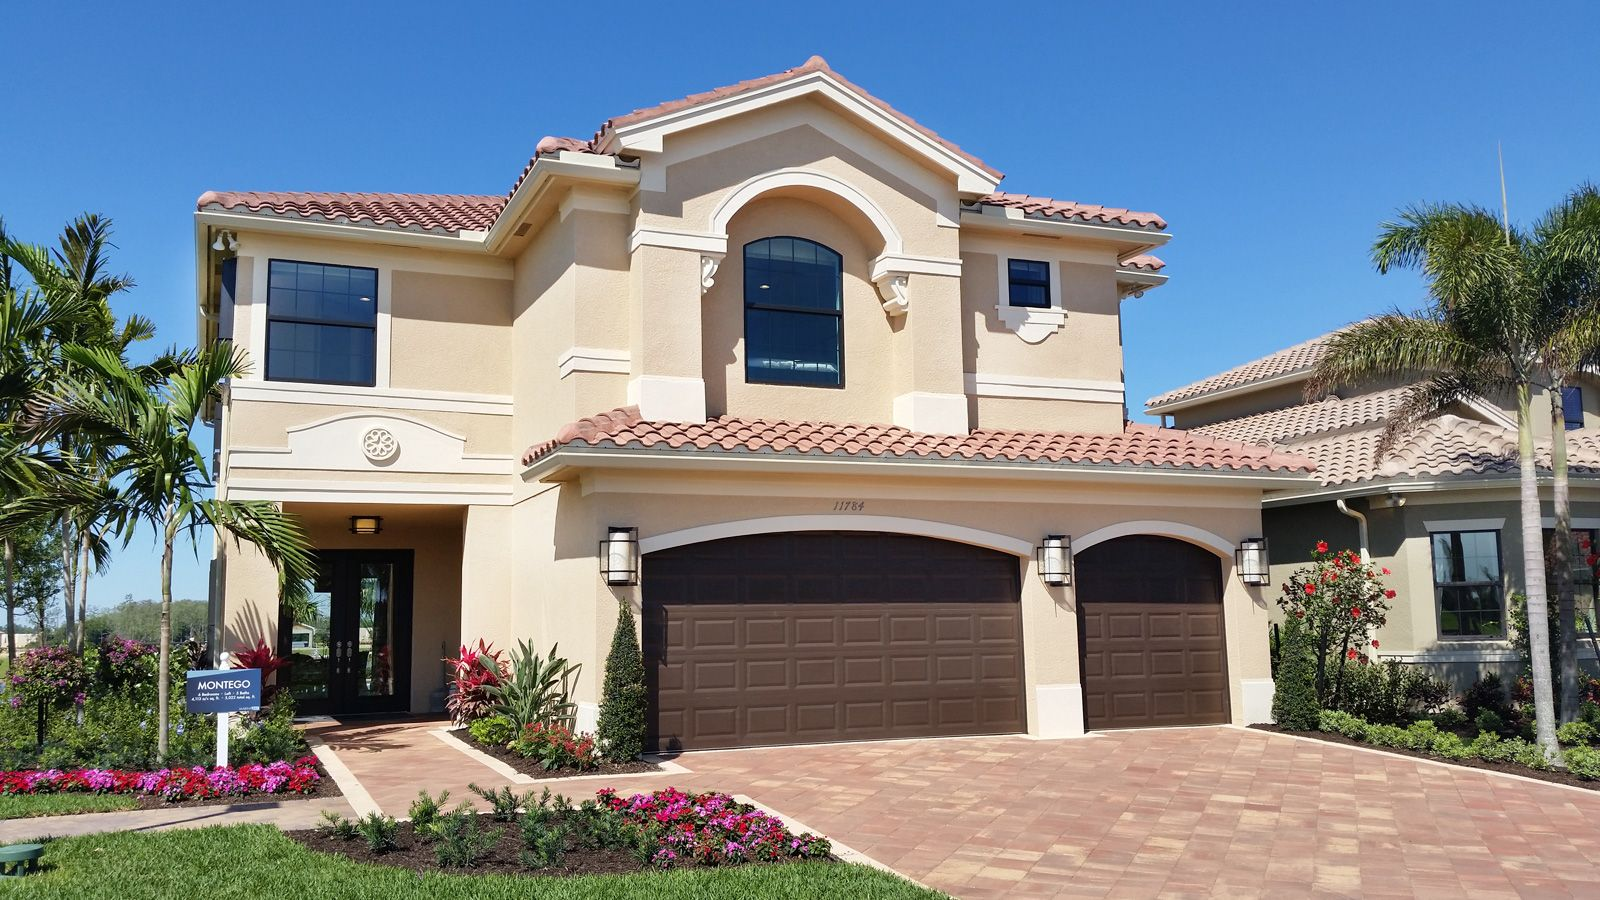 Cape coral real estate and homes for sale topix for Floridian homes